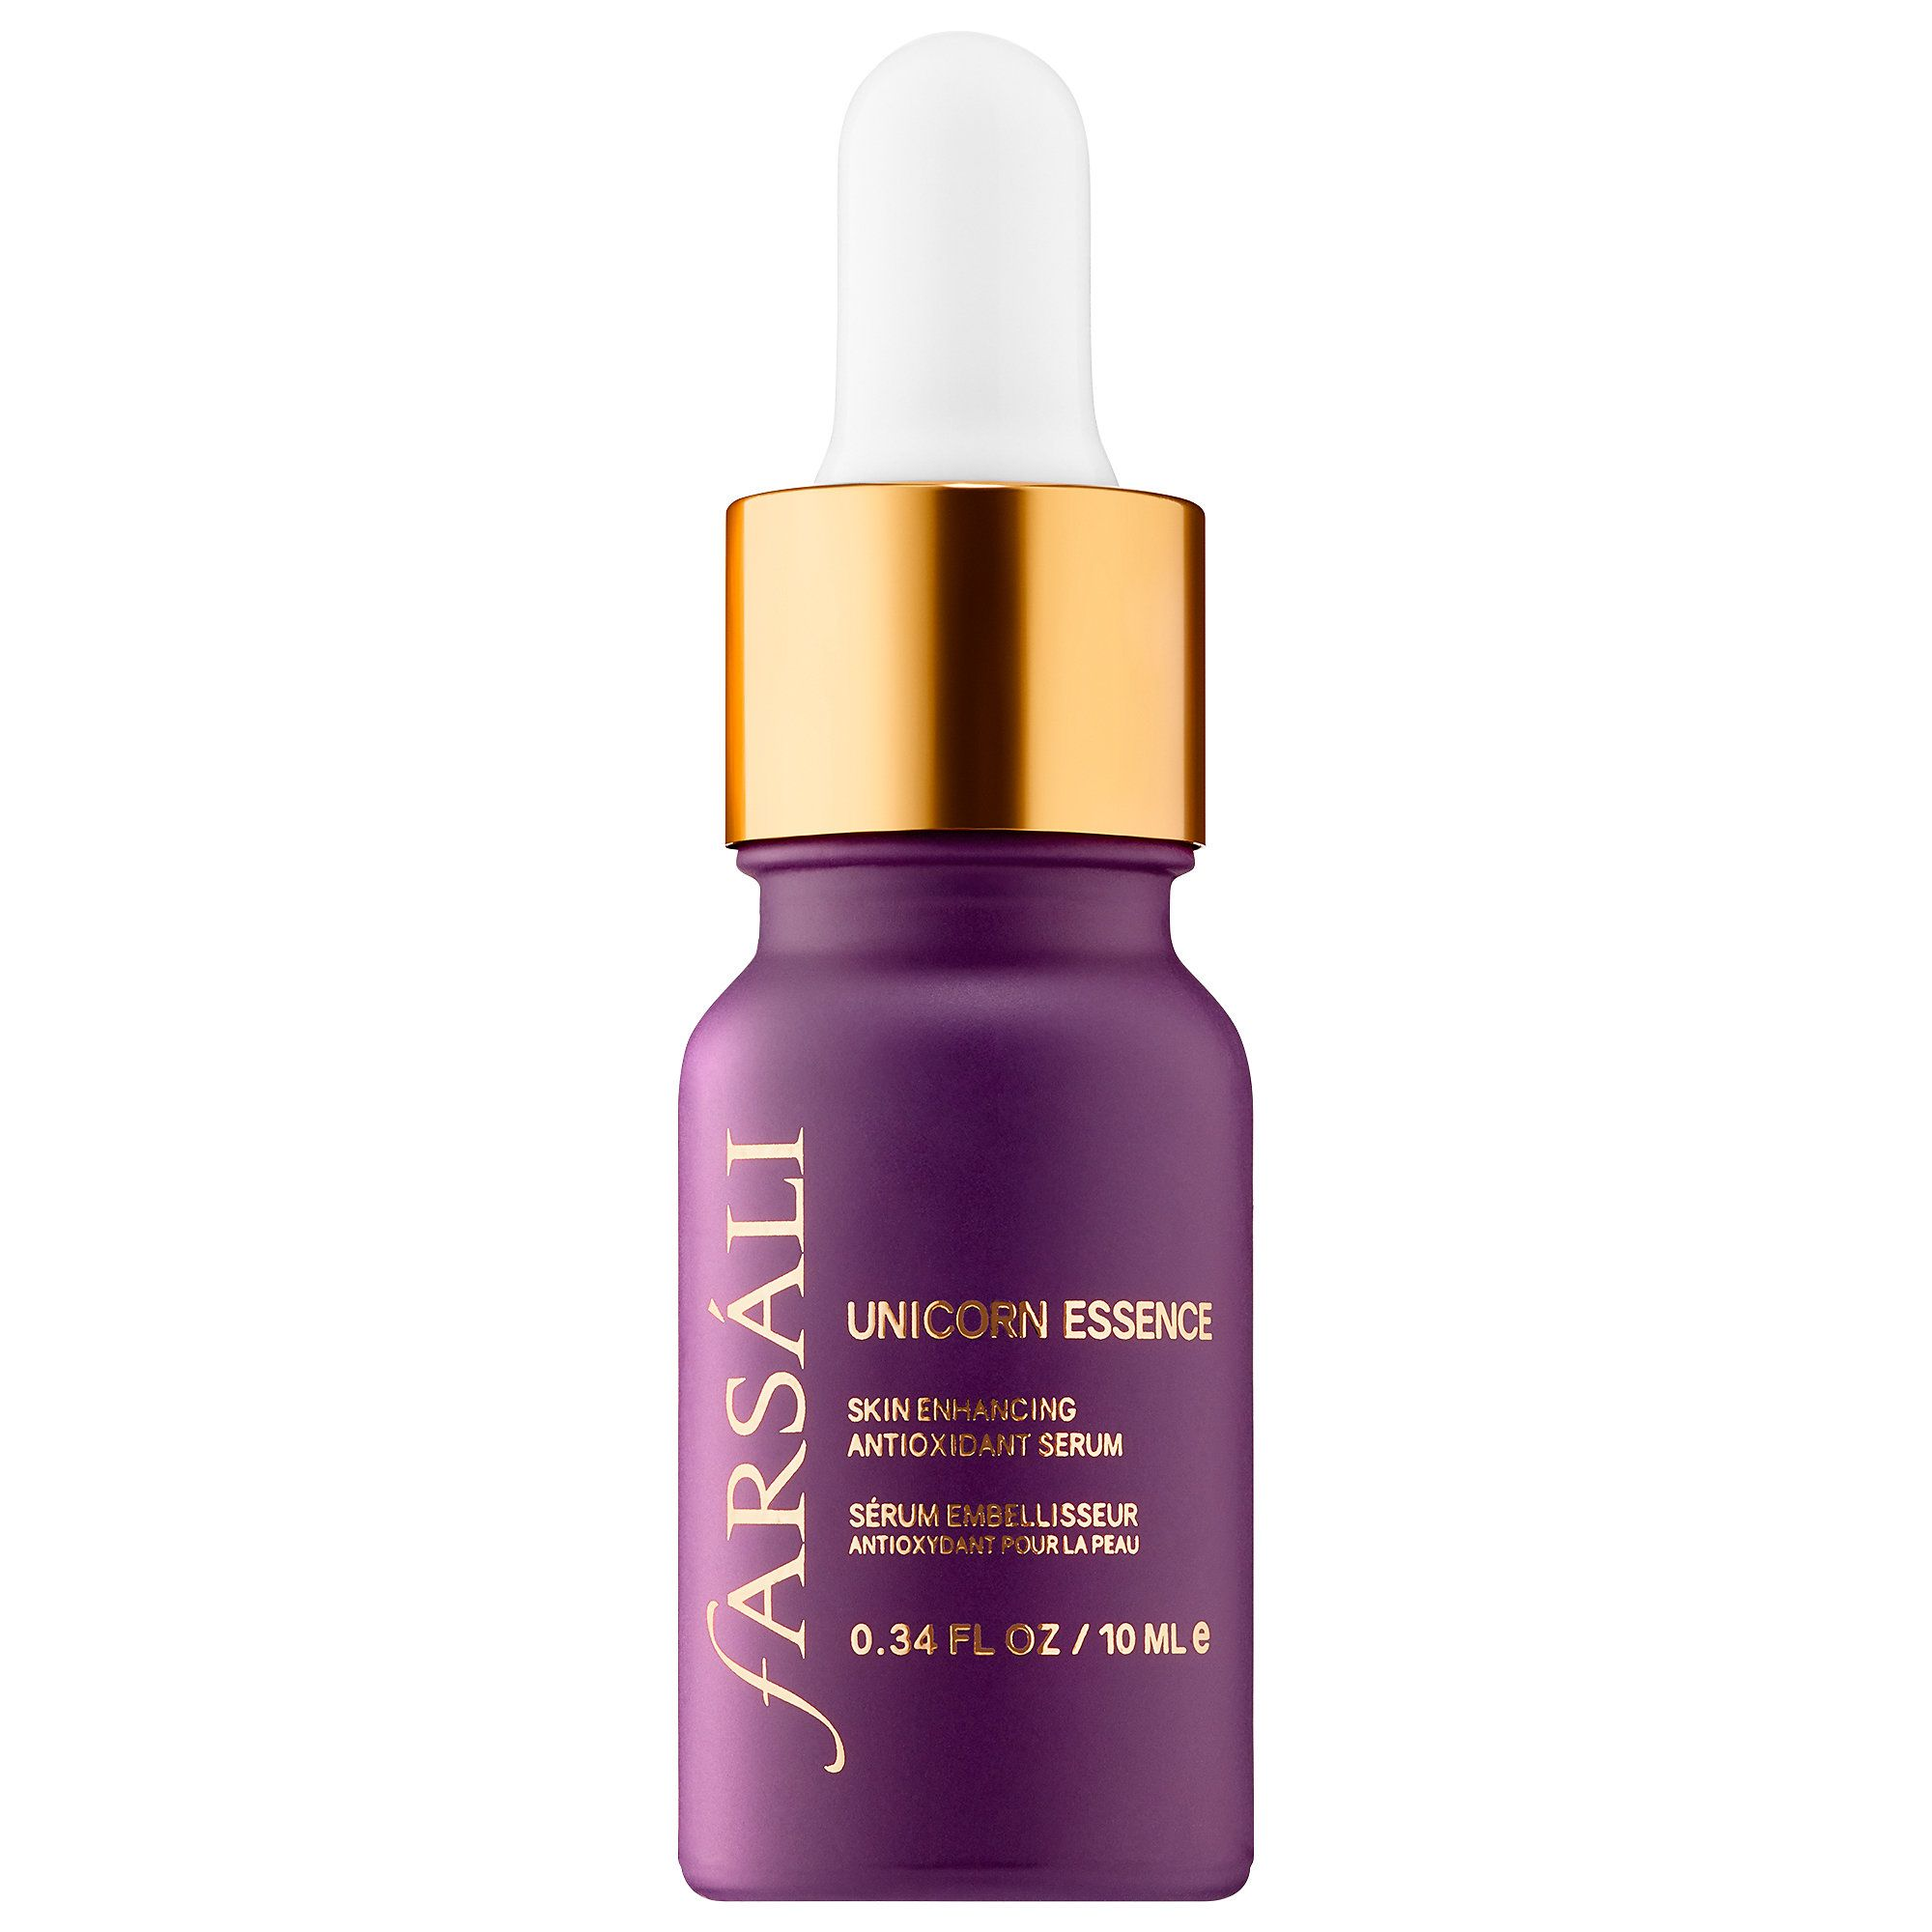 Farsál | Unicorn Essence Antioxidant Primer Serum Mini